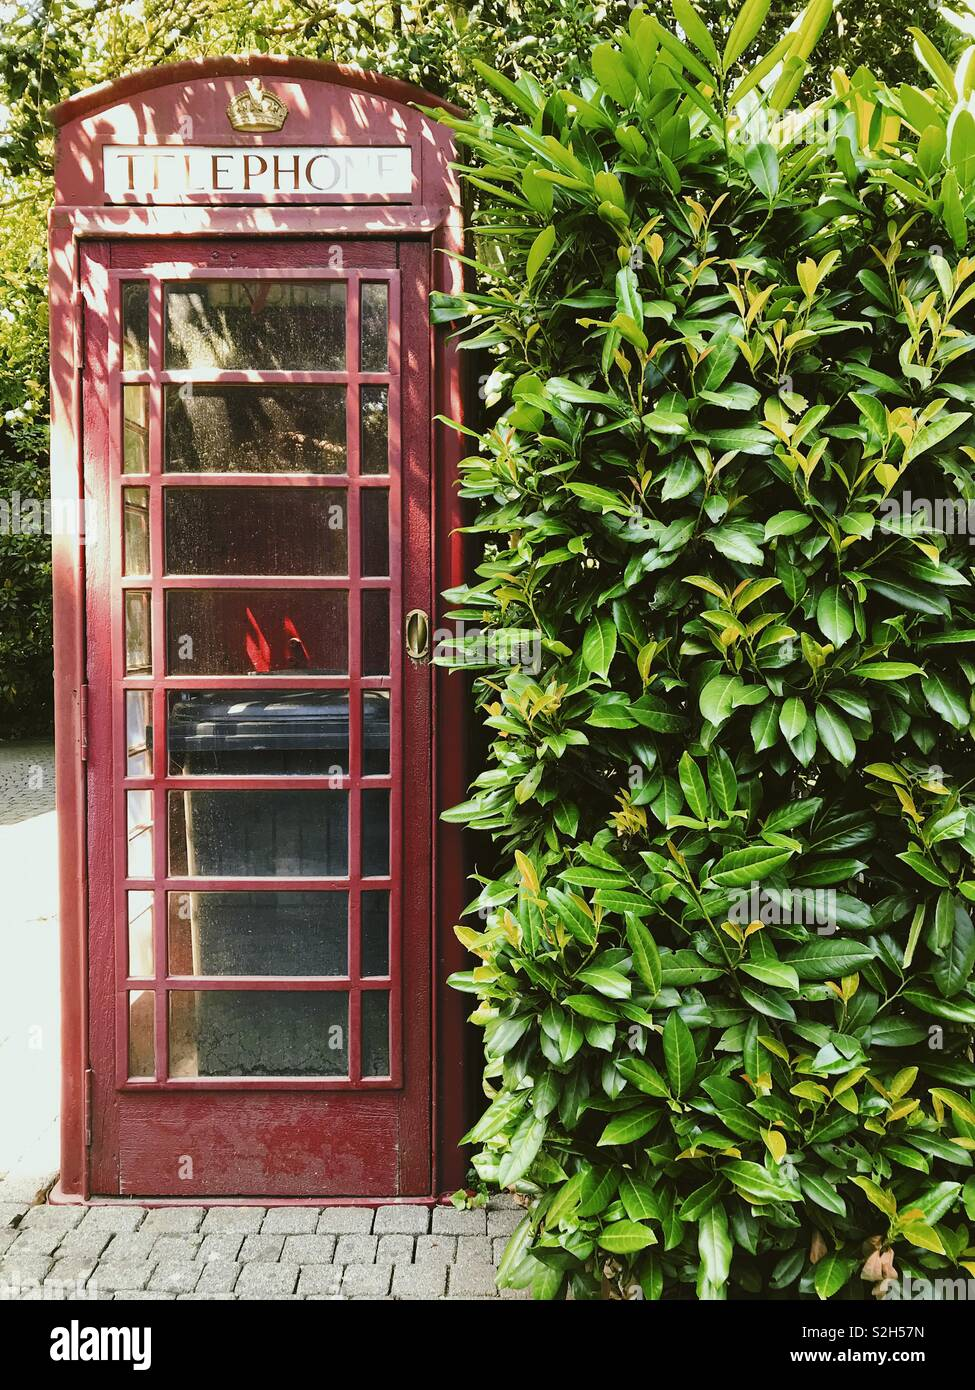 British telephone cabin with a trash can inside - Stock Image